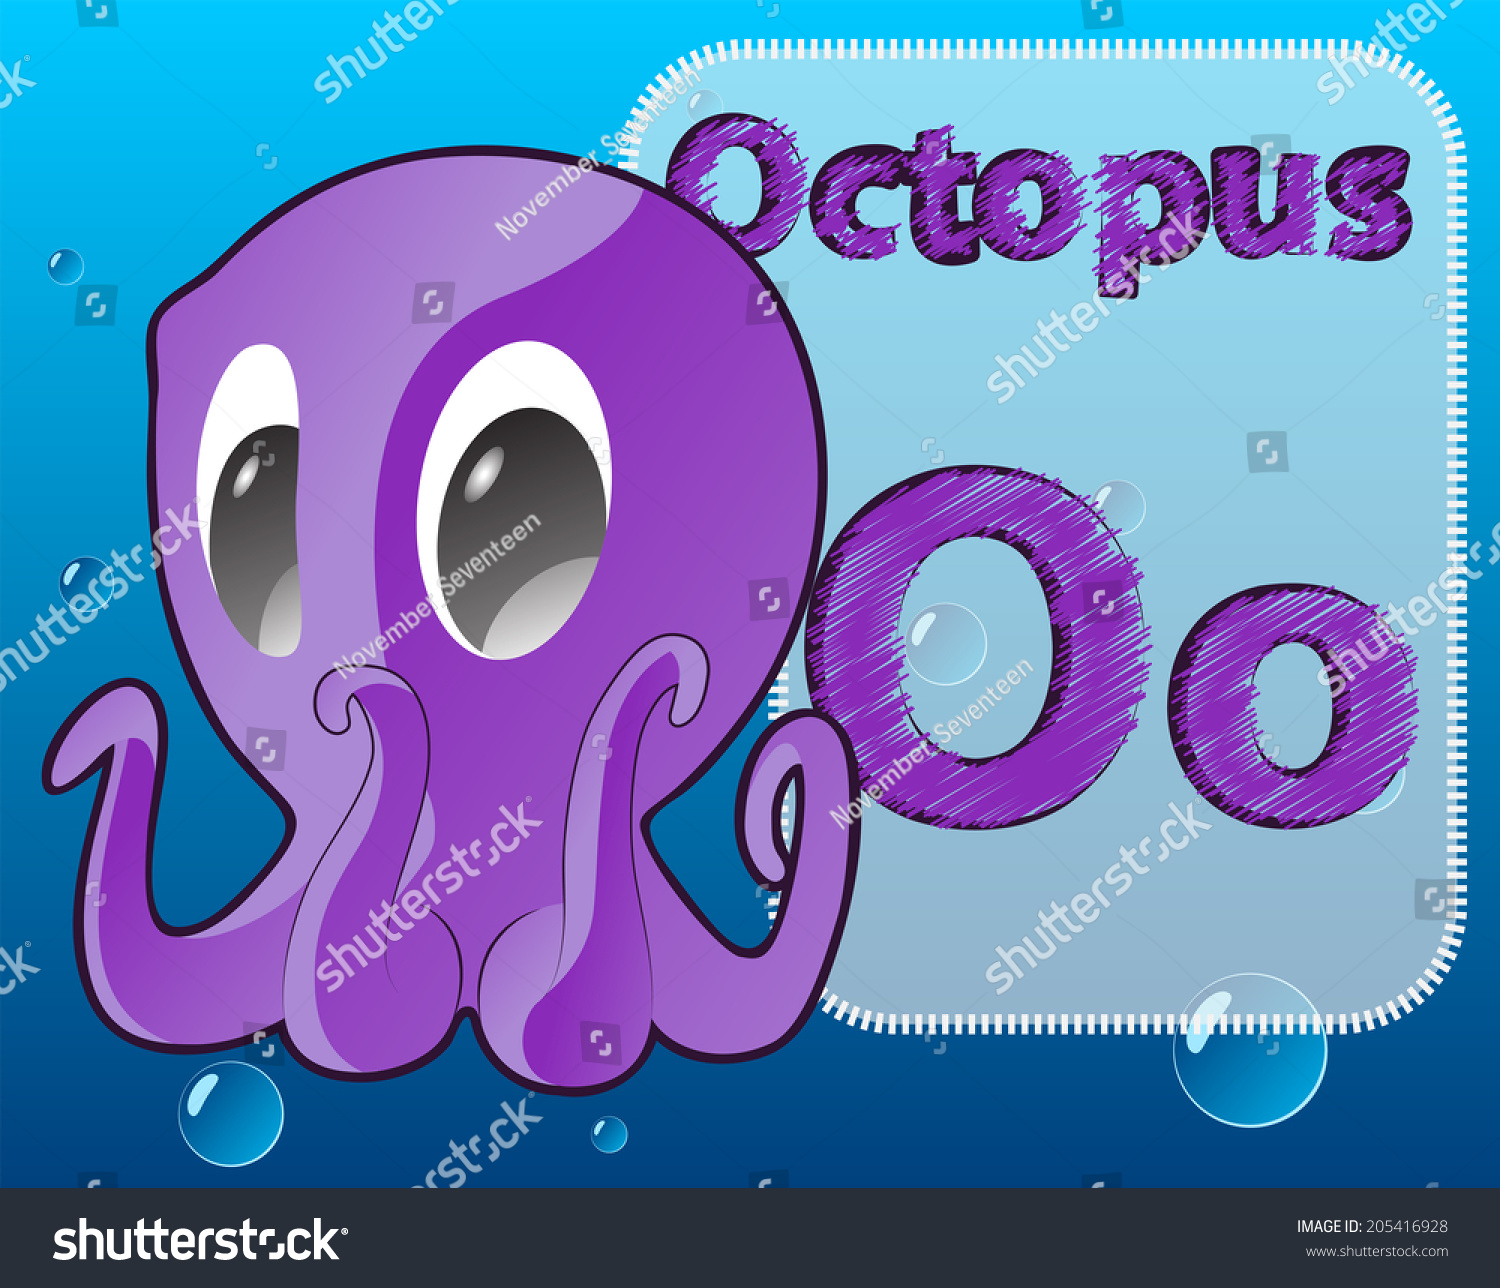 Cartoon Octopus Alphabet Zoo Card For Kids To Learn The